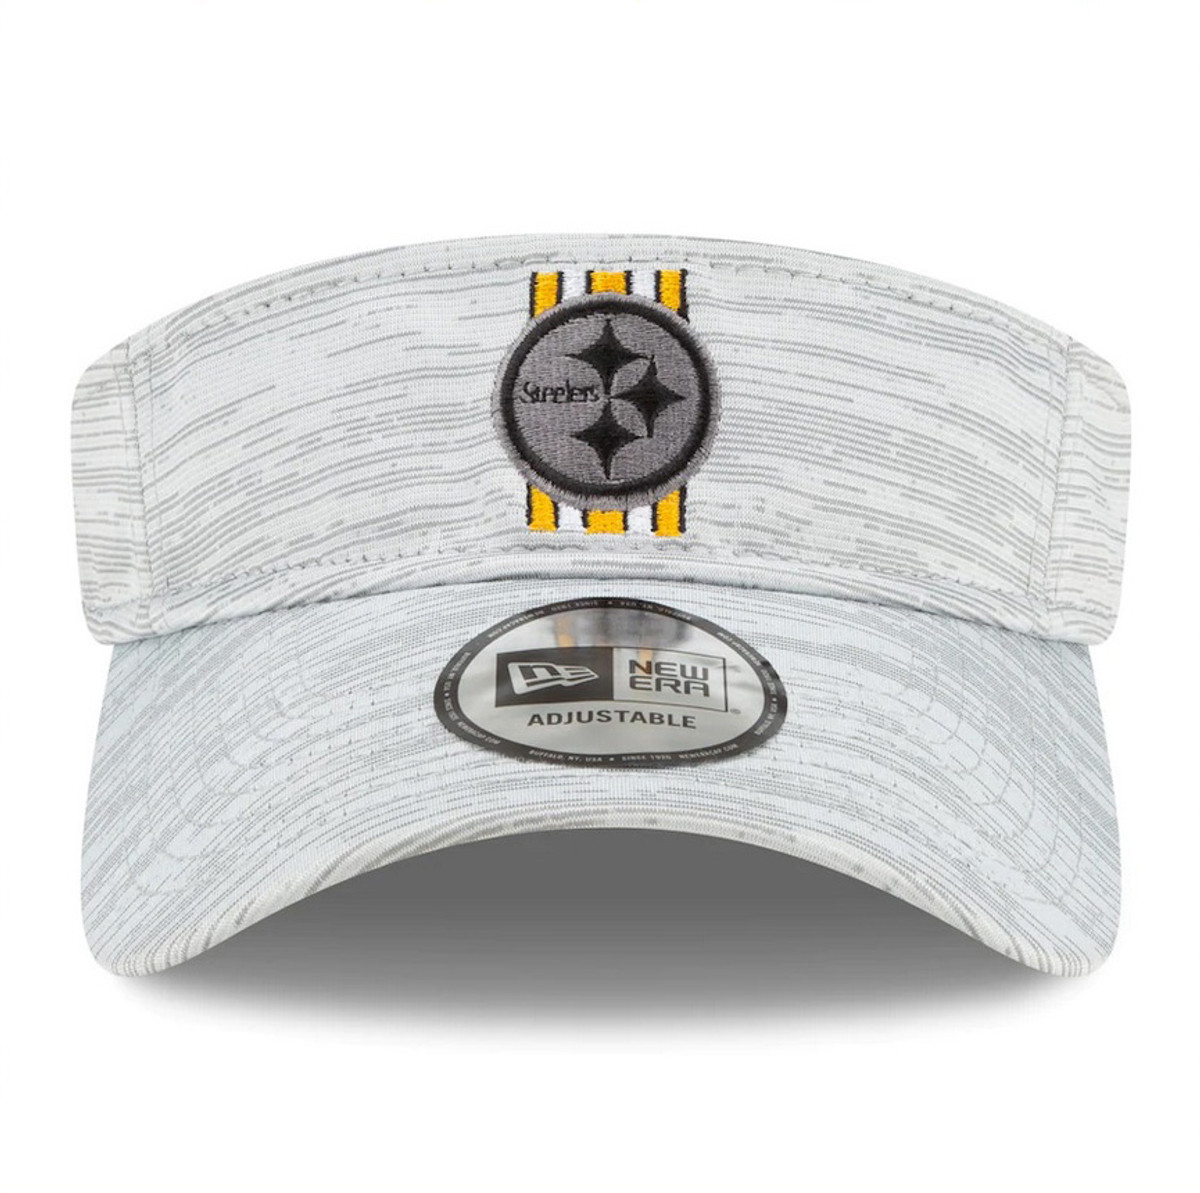 Pittsburgh Steelers New Era 2021 NFL Training Camp Official Visor - Gray